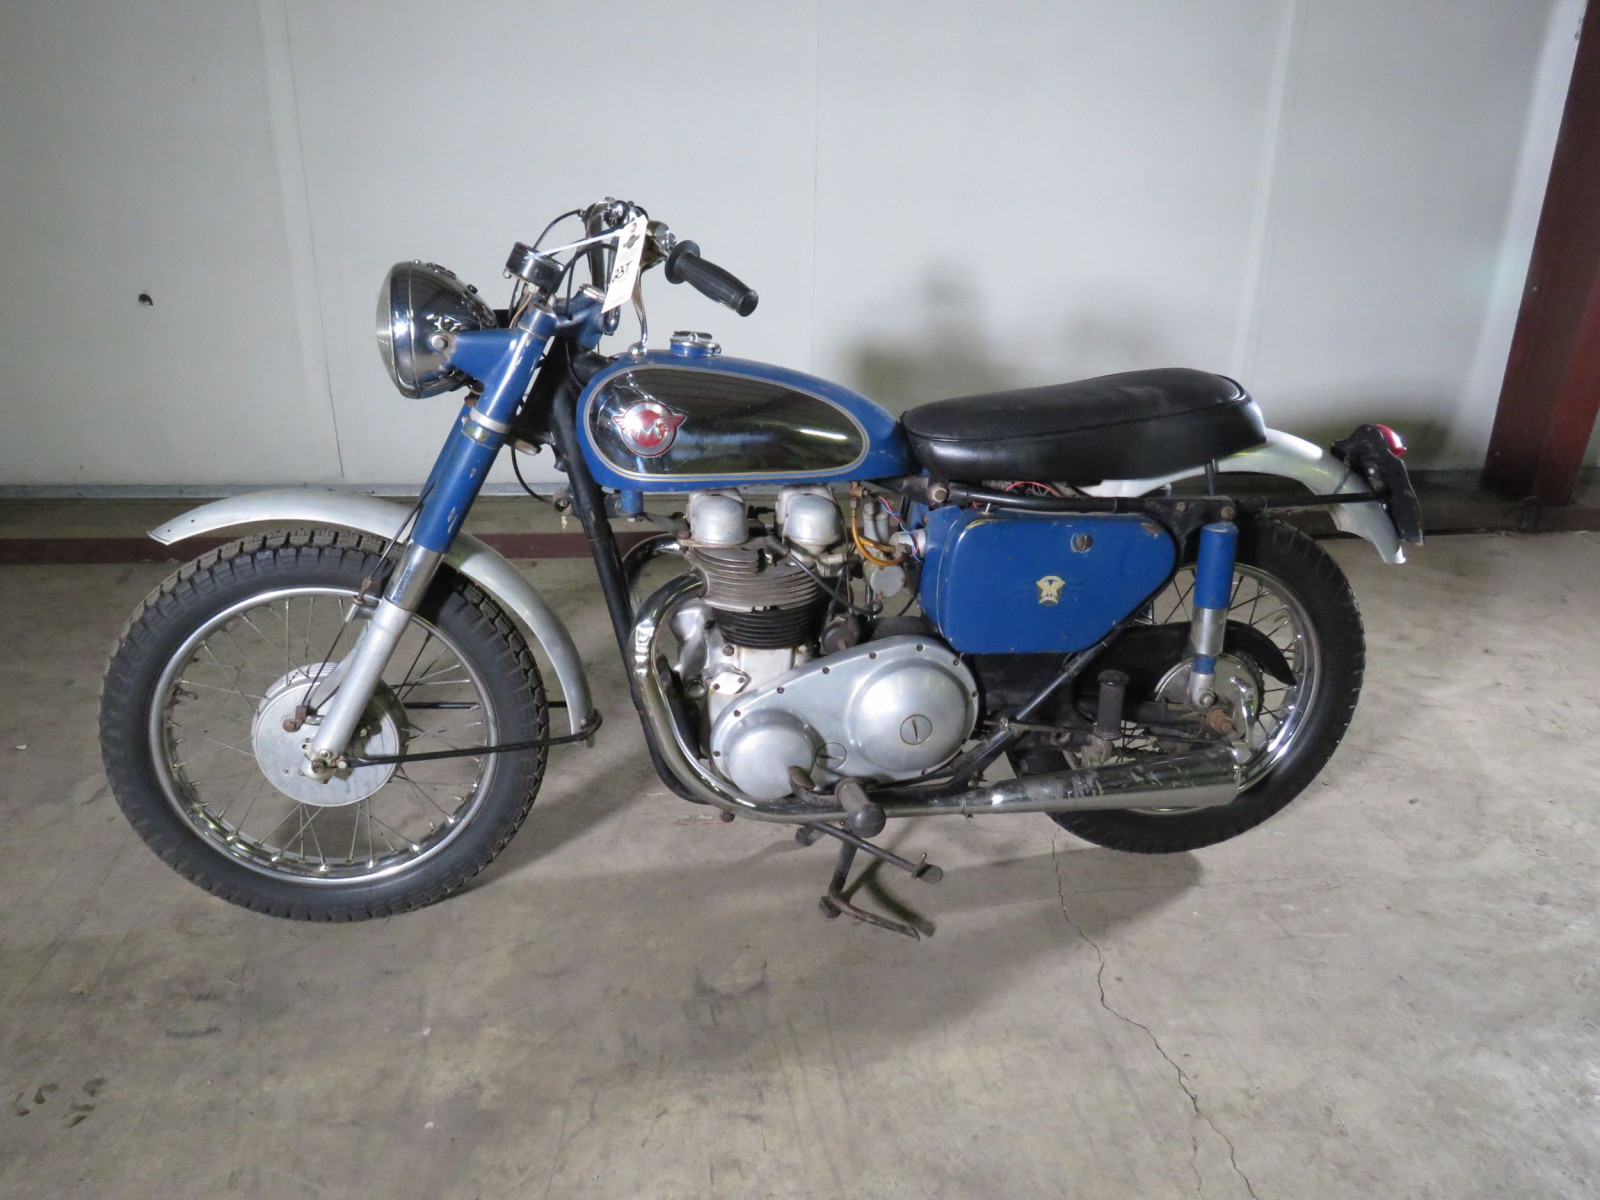 1962 Matchless G12 Motorcycle - Image 1